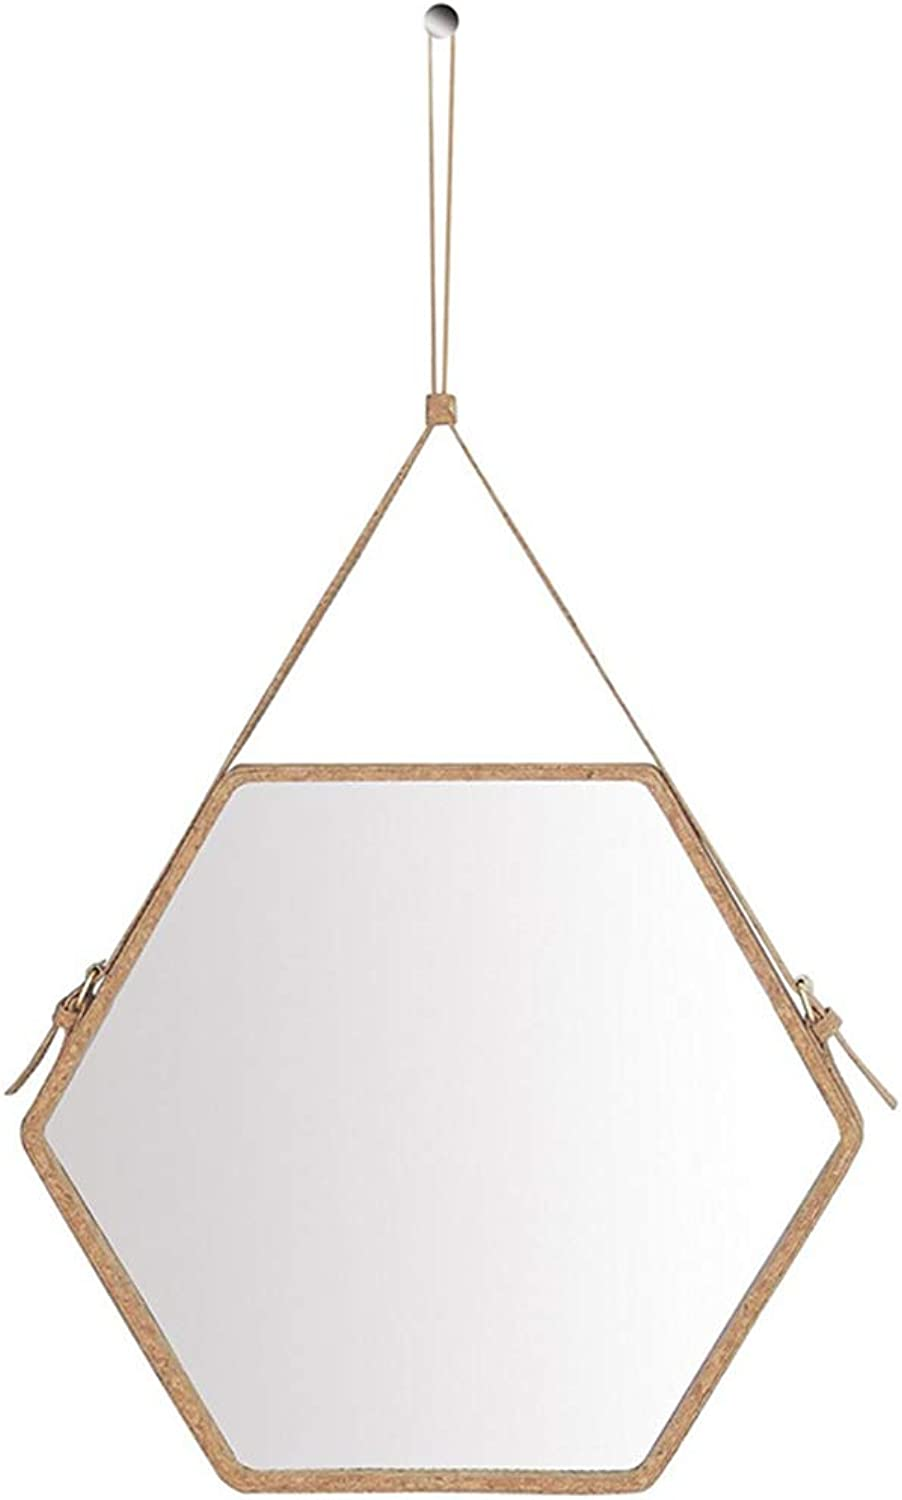 Decorative Wall Hanging Mirror Hexagonal Faux Leather Border - 3 Light Brown Frame